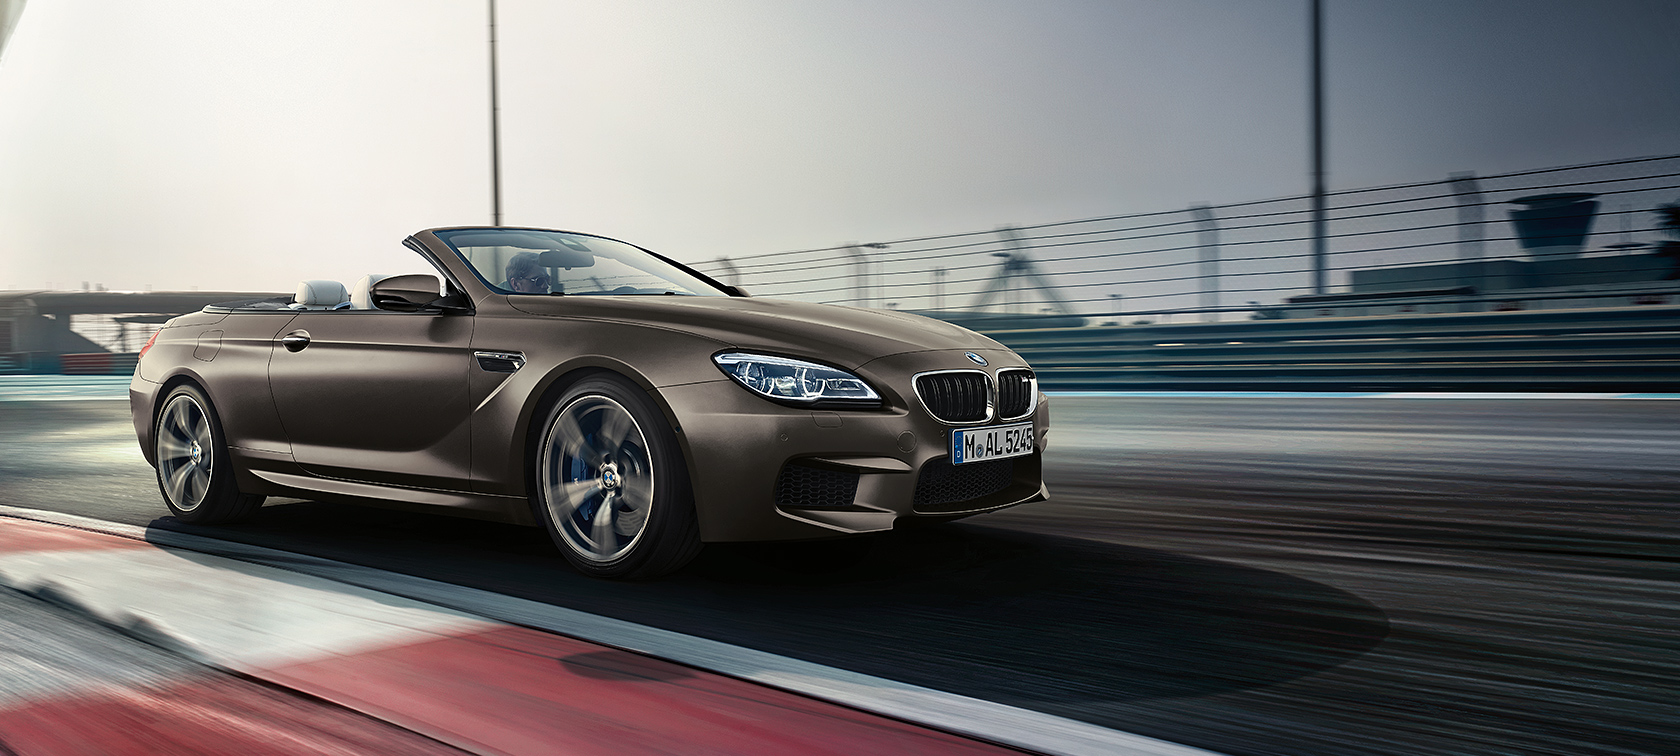 BMW M Series M6 Convertible in brown metallic driving on highway.